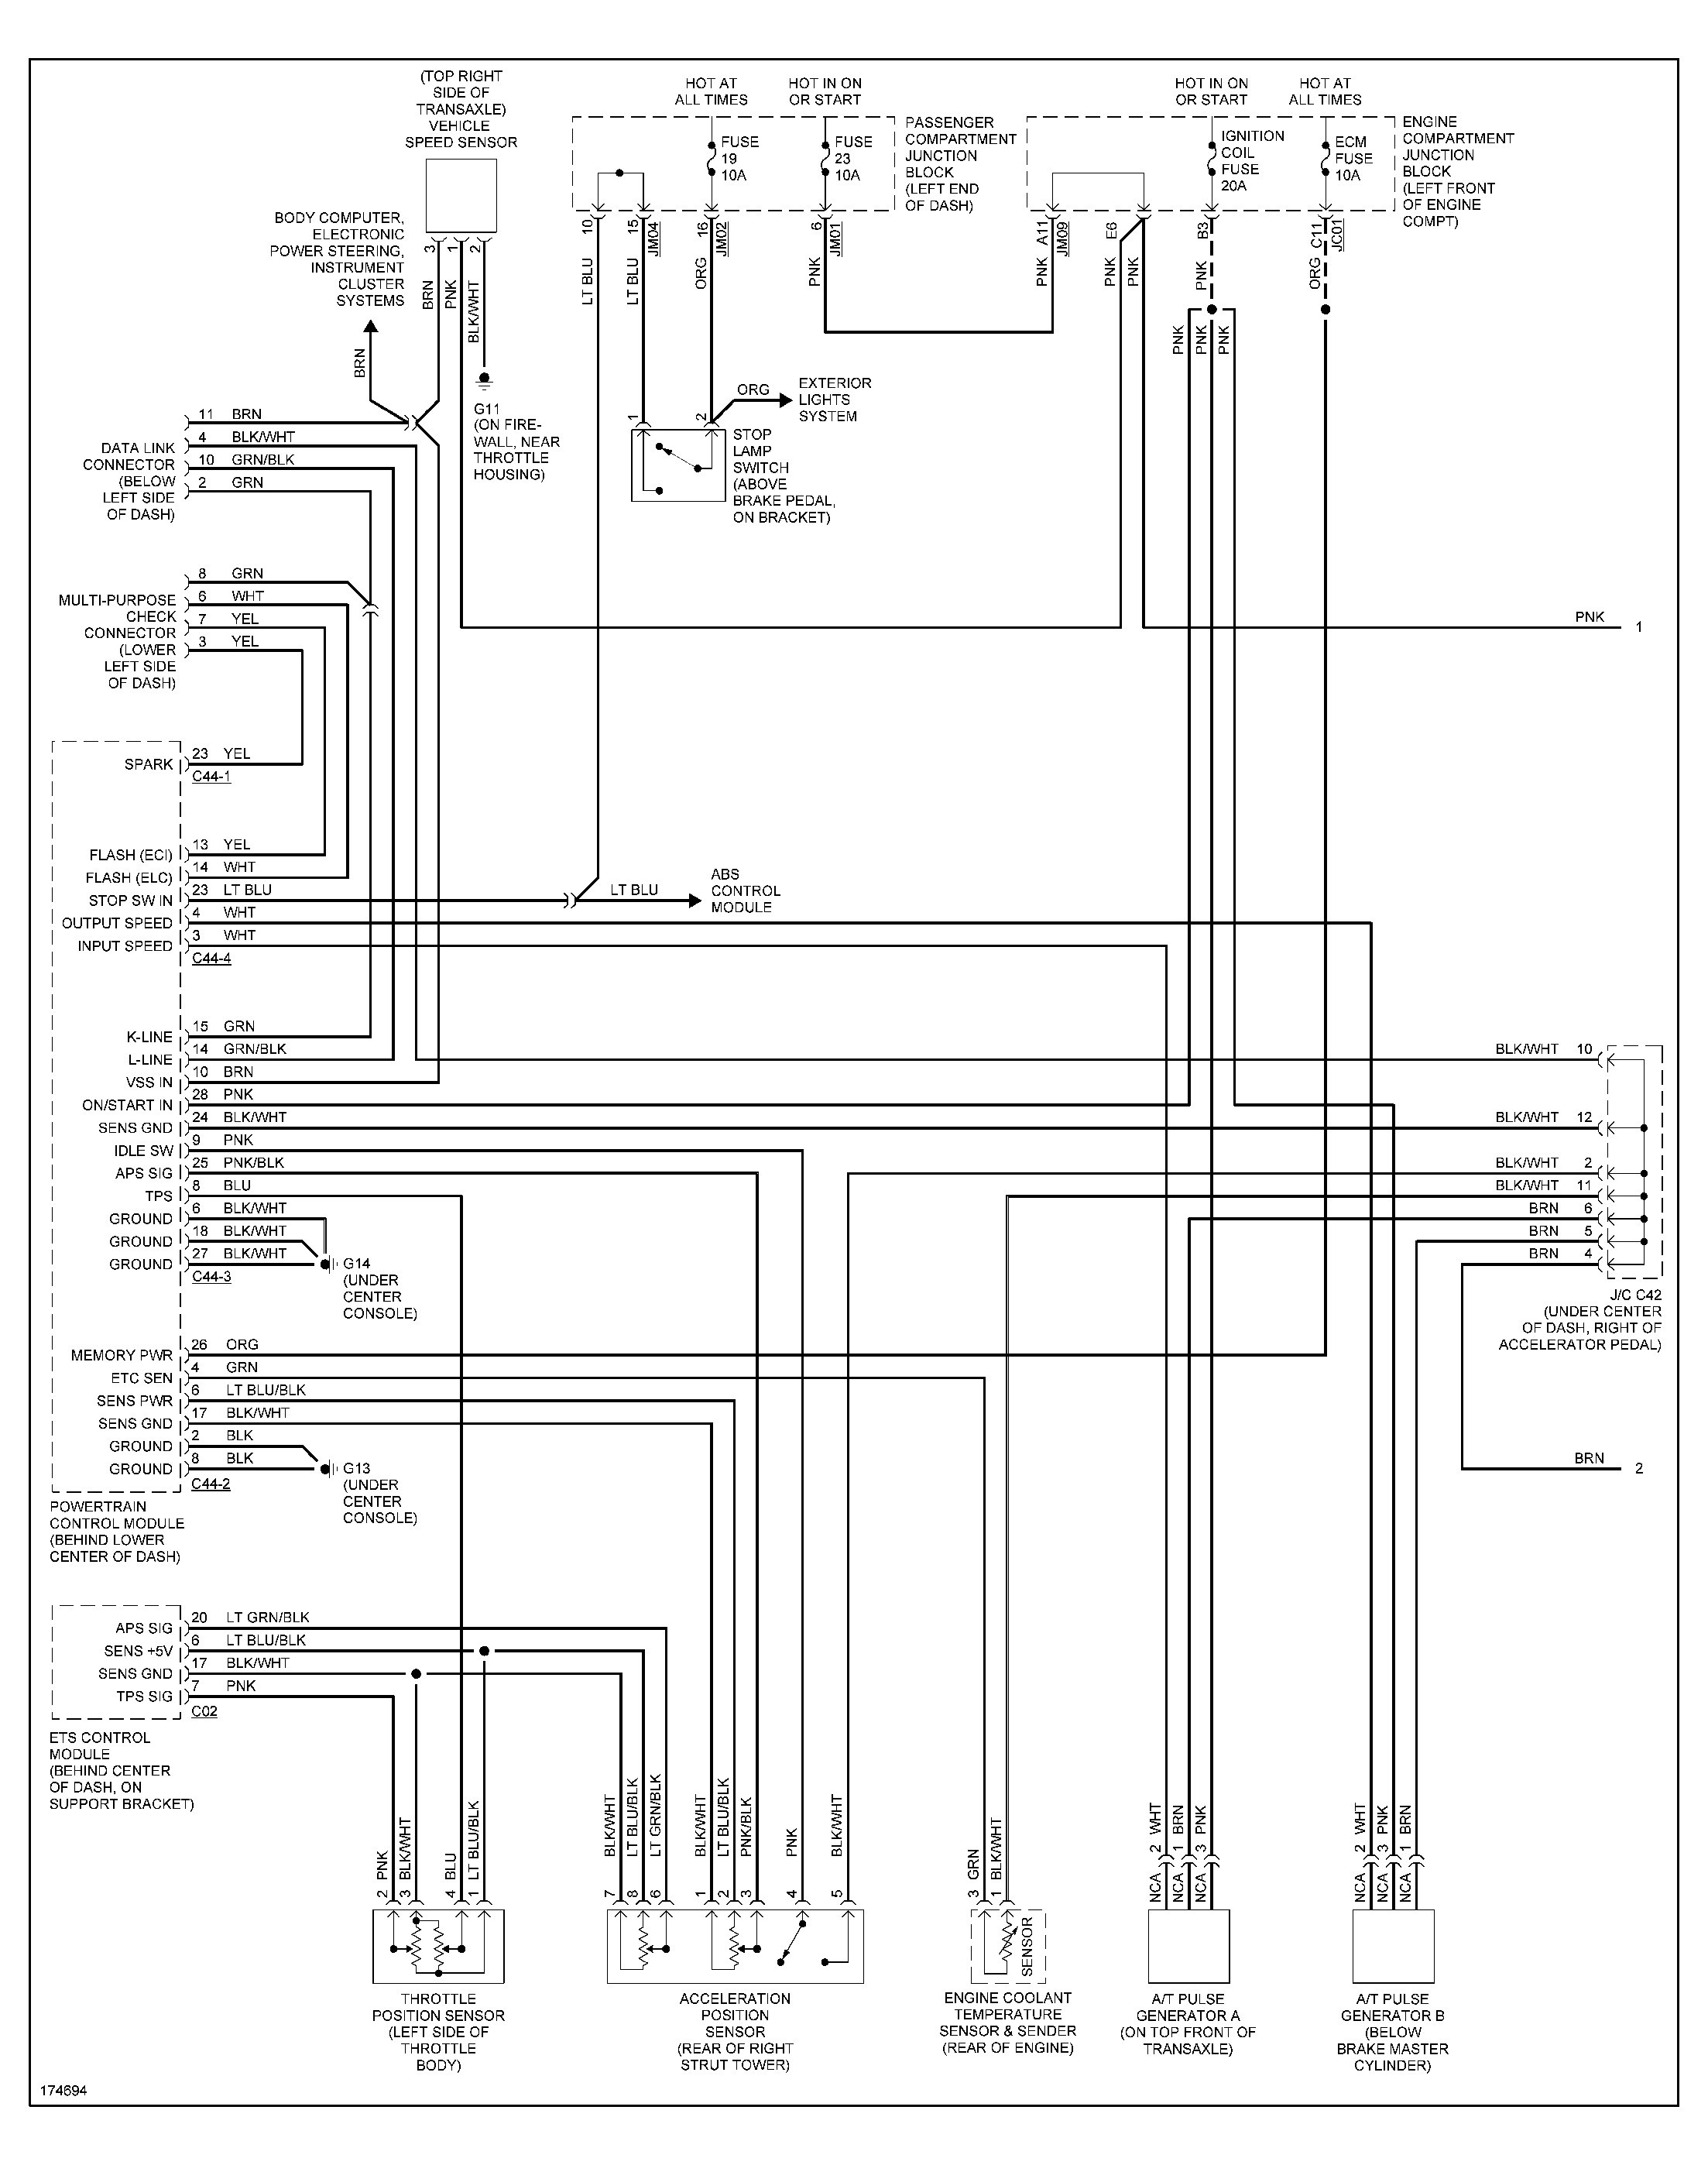 03 Hyundai Santa Fe Engine Diagram | Wiring Library